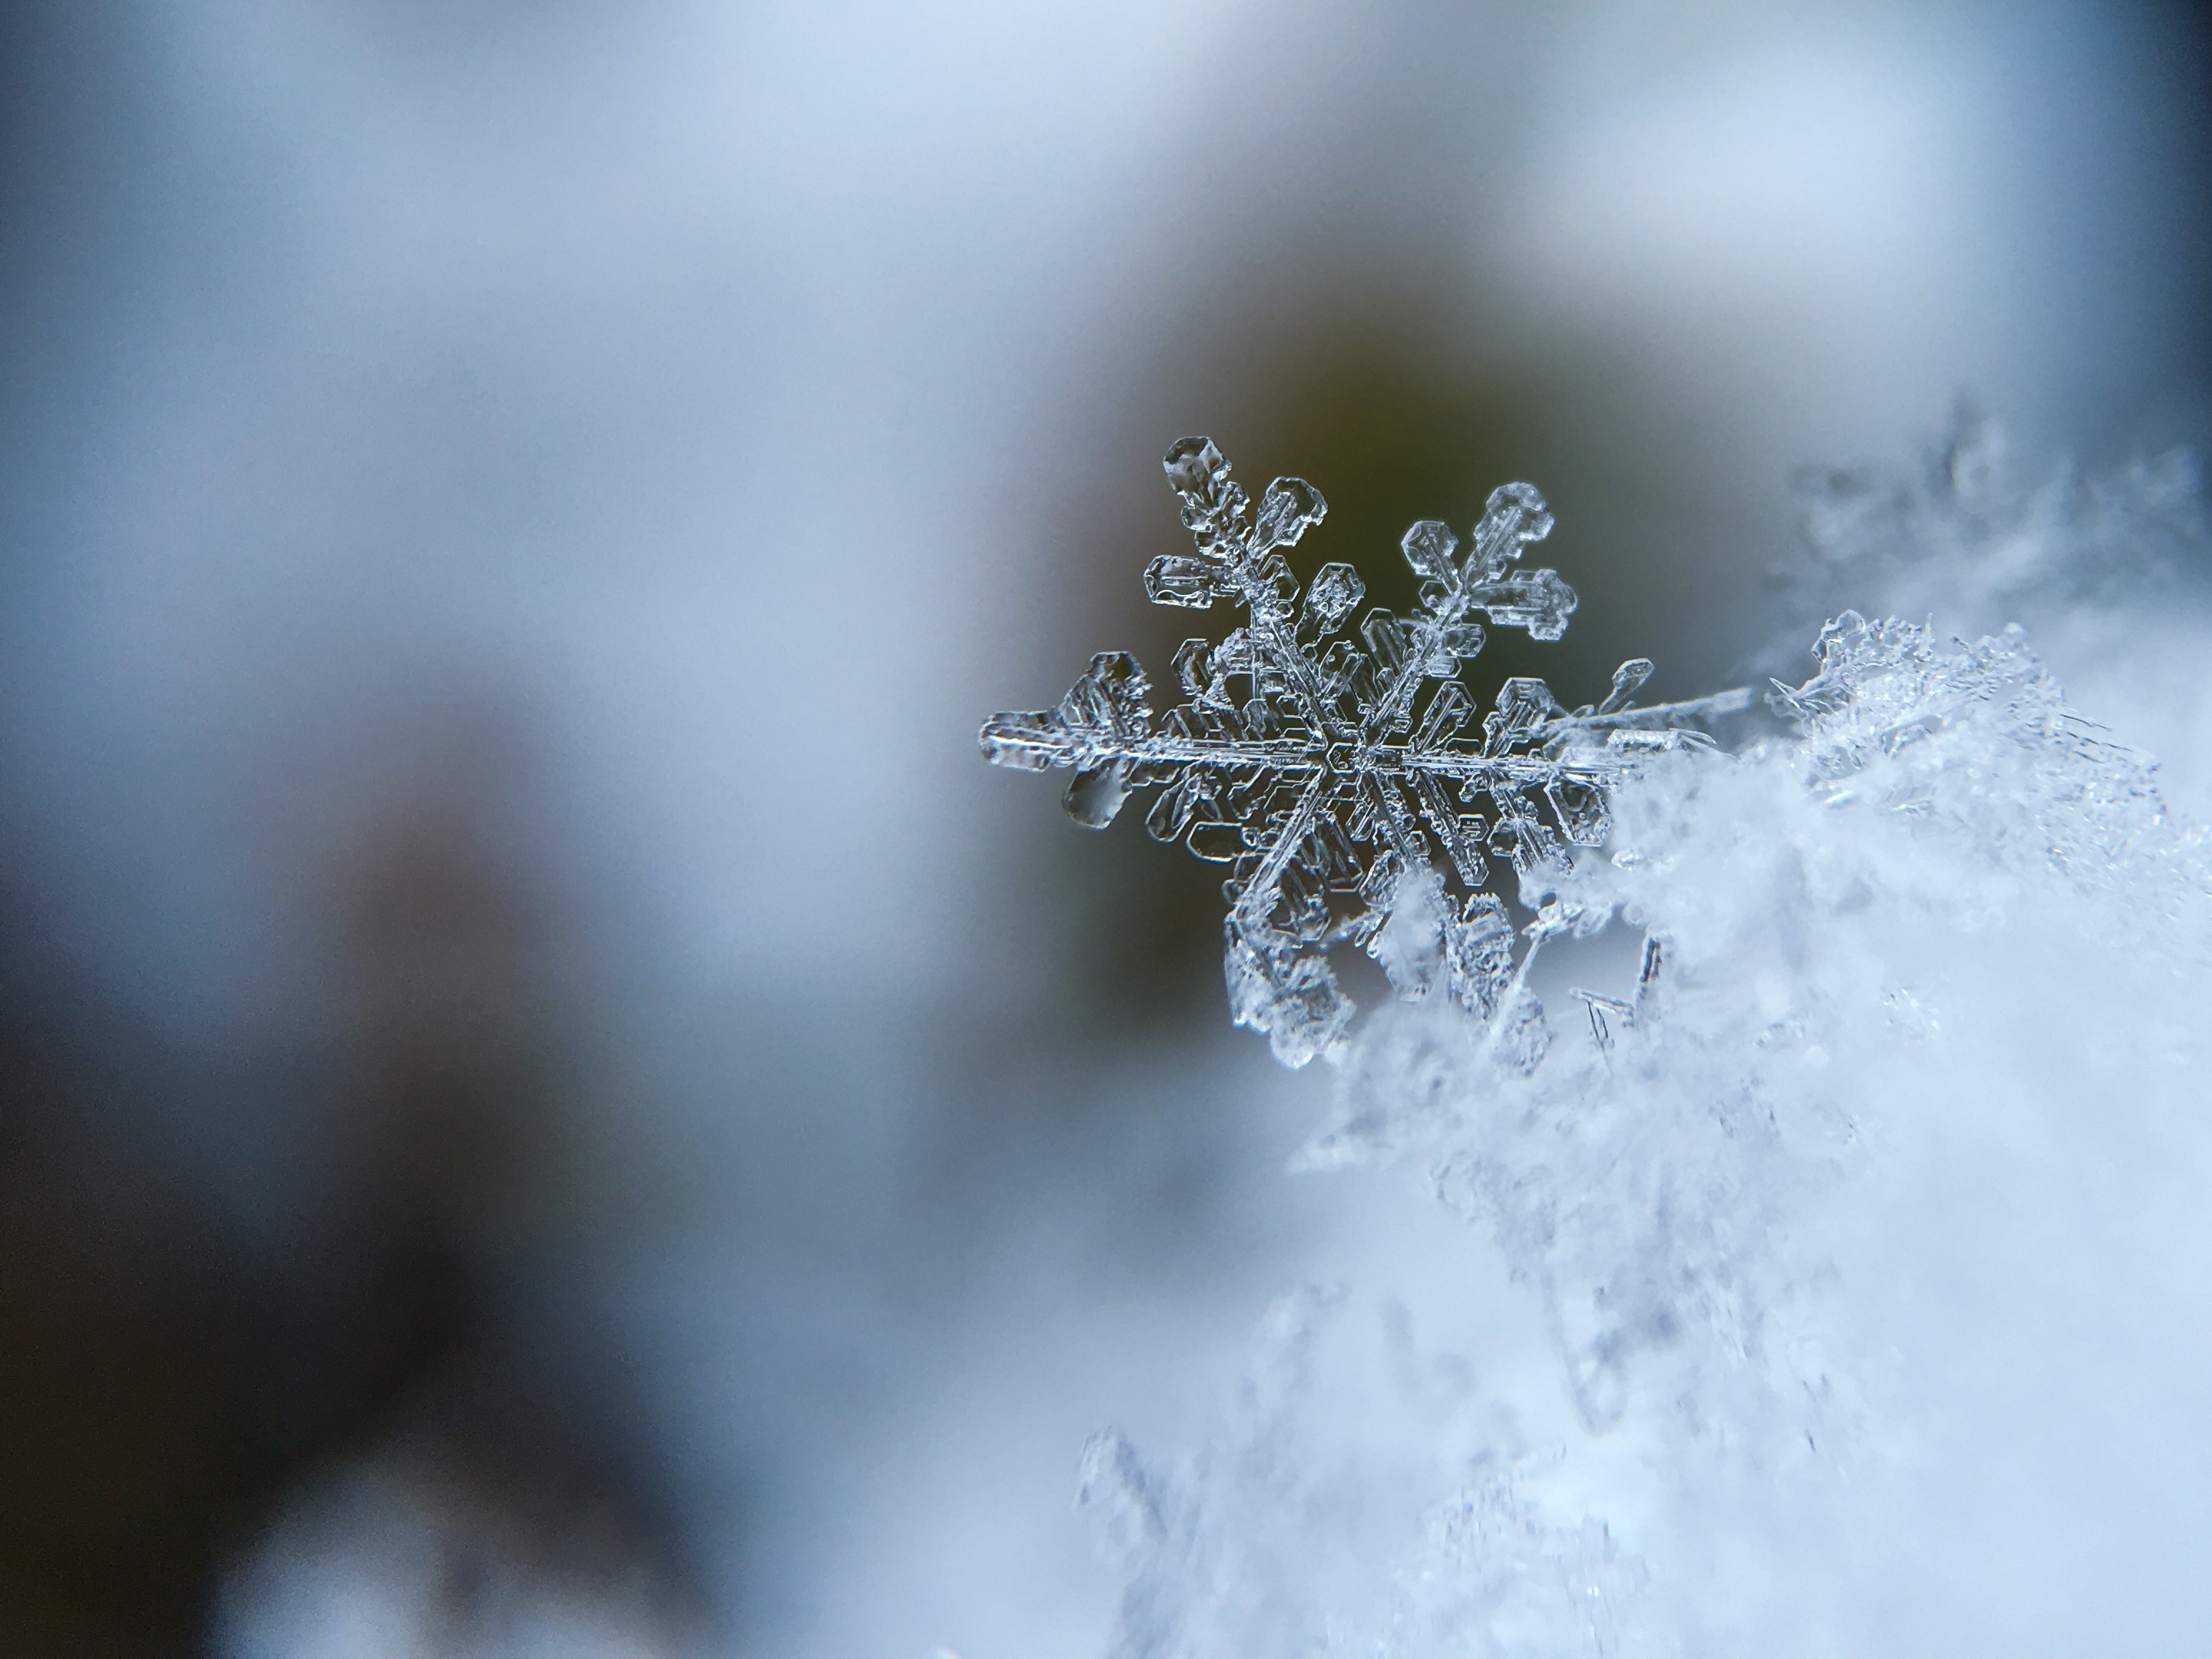 com-Cold-Snow-Crystal-Macro-Snow-Snowflake-Crystal-1245748